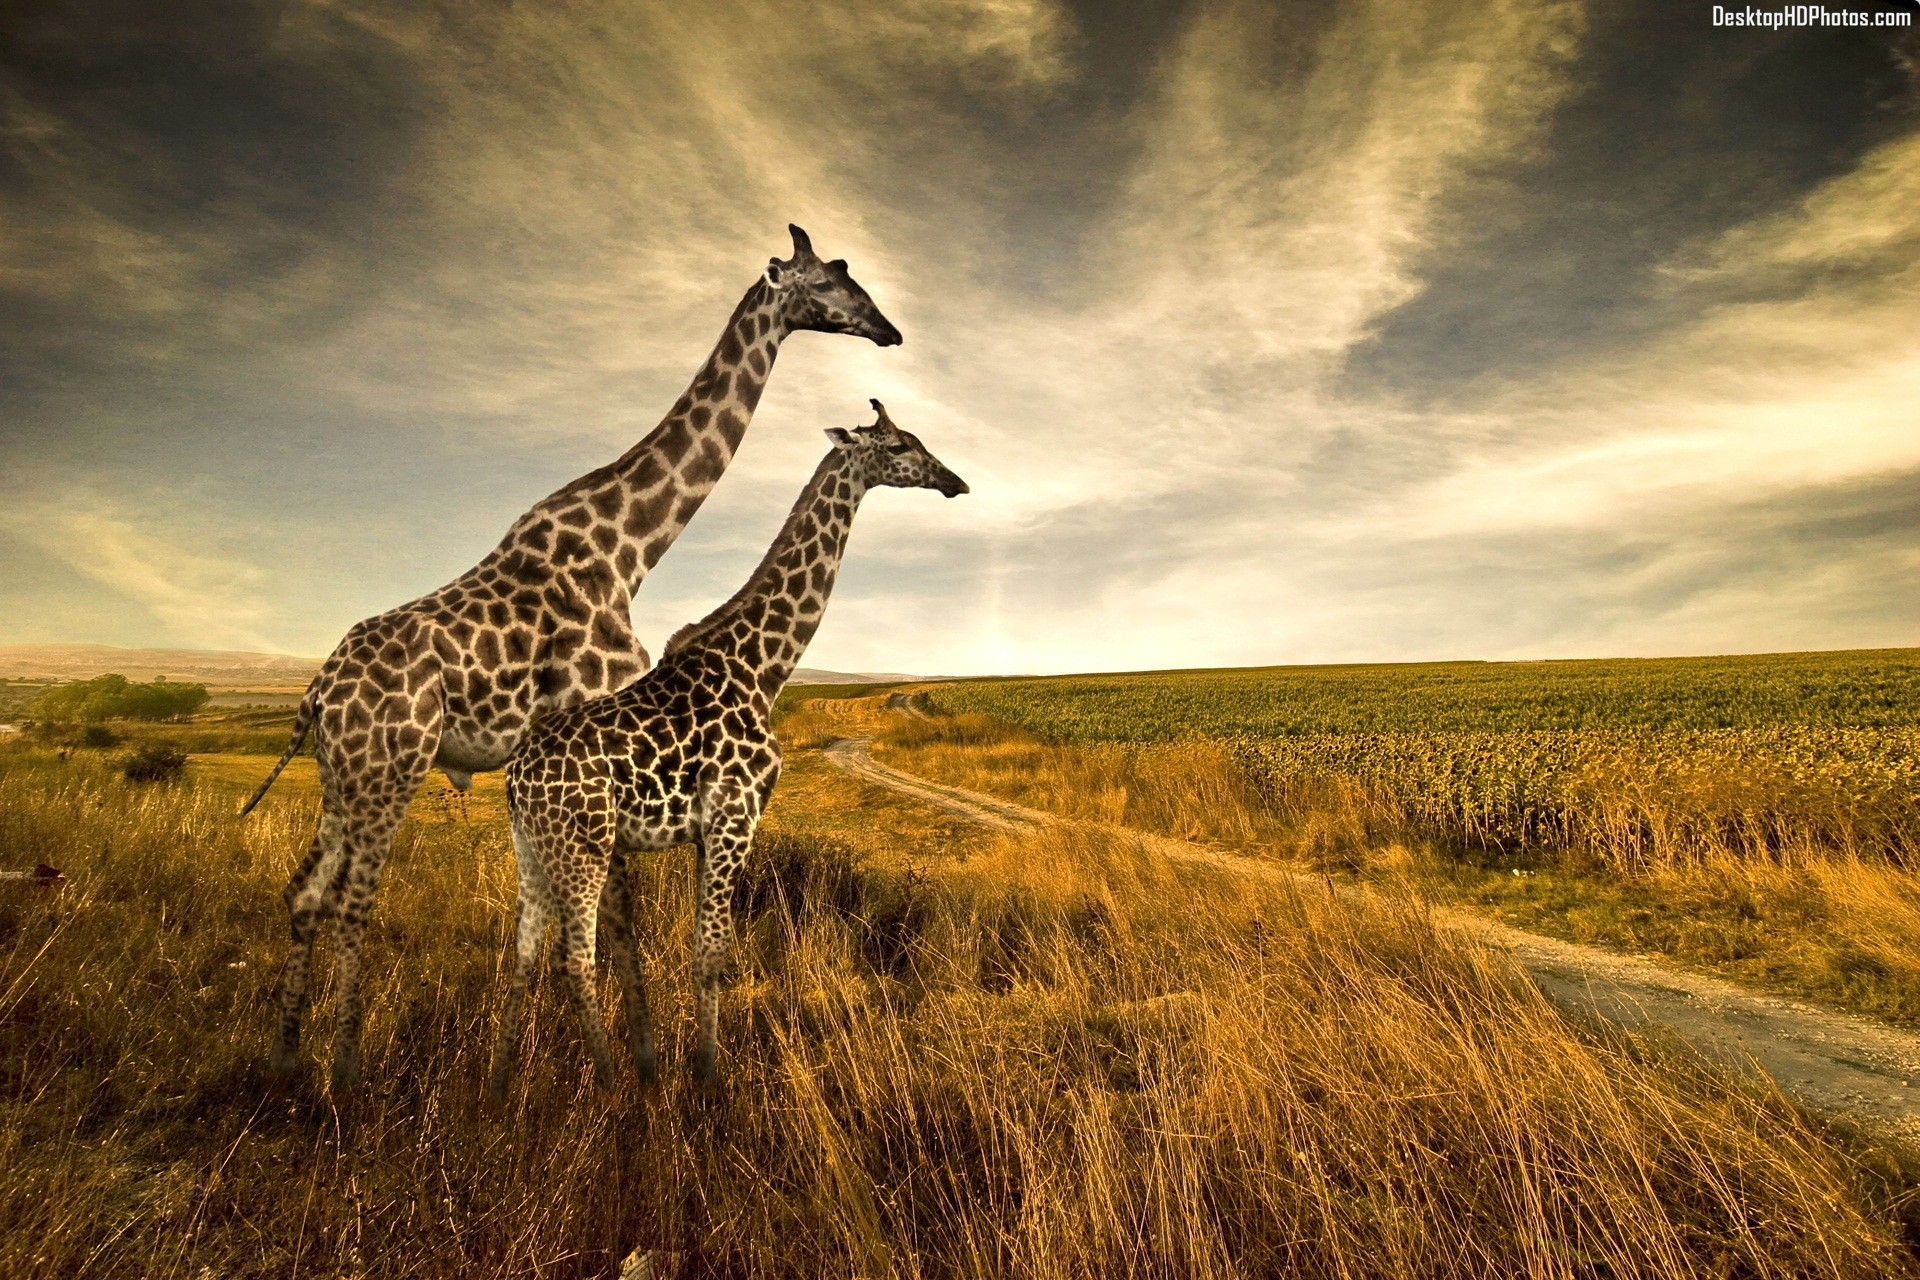 Giraffe Pair Wallpapers Archive 1920x1280